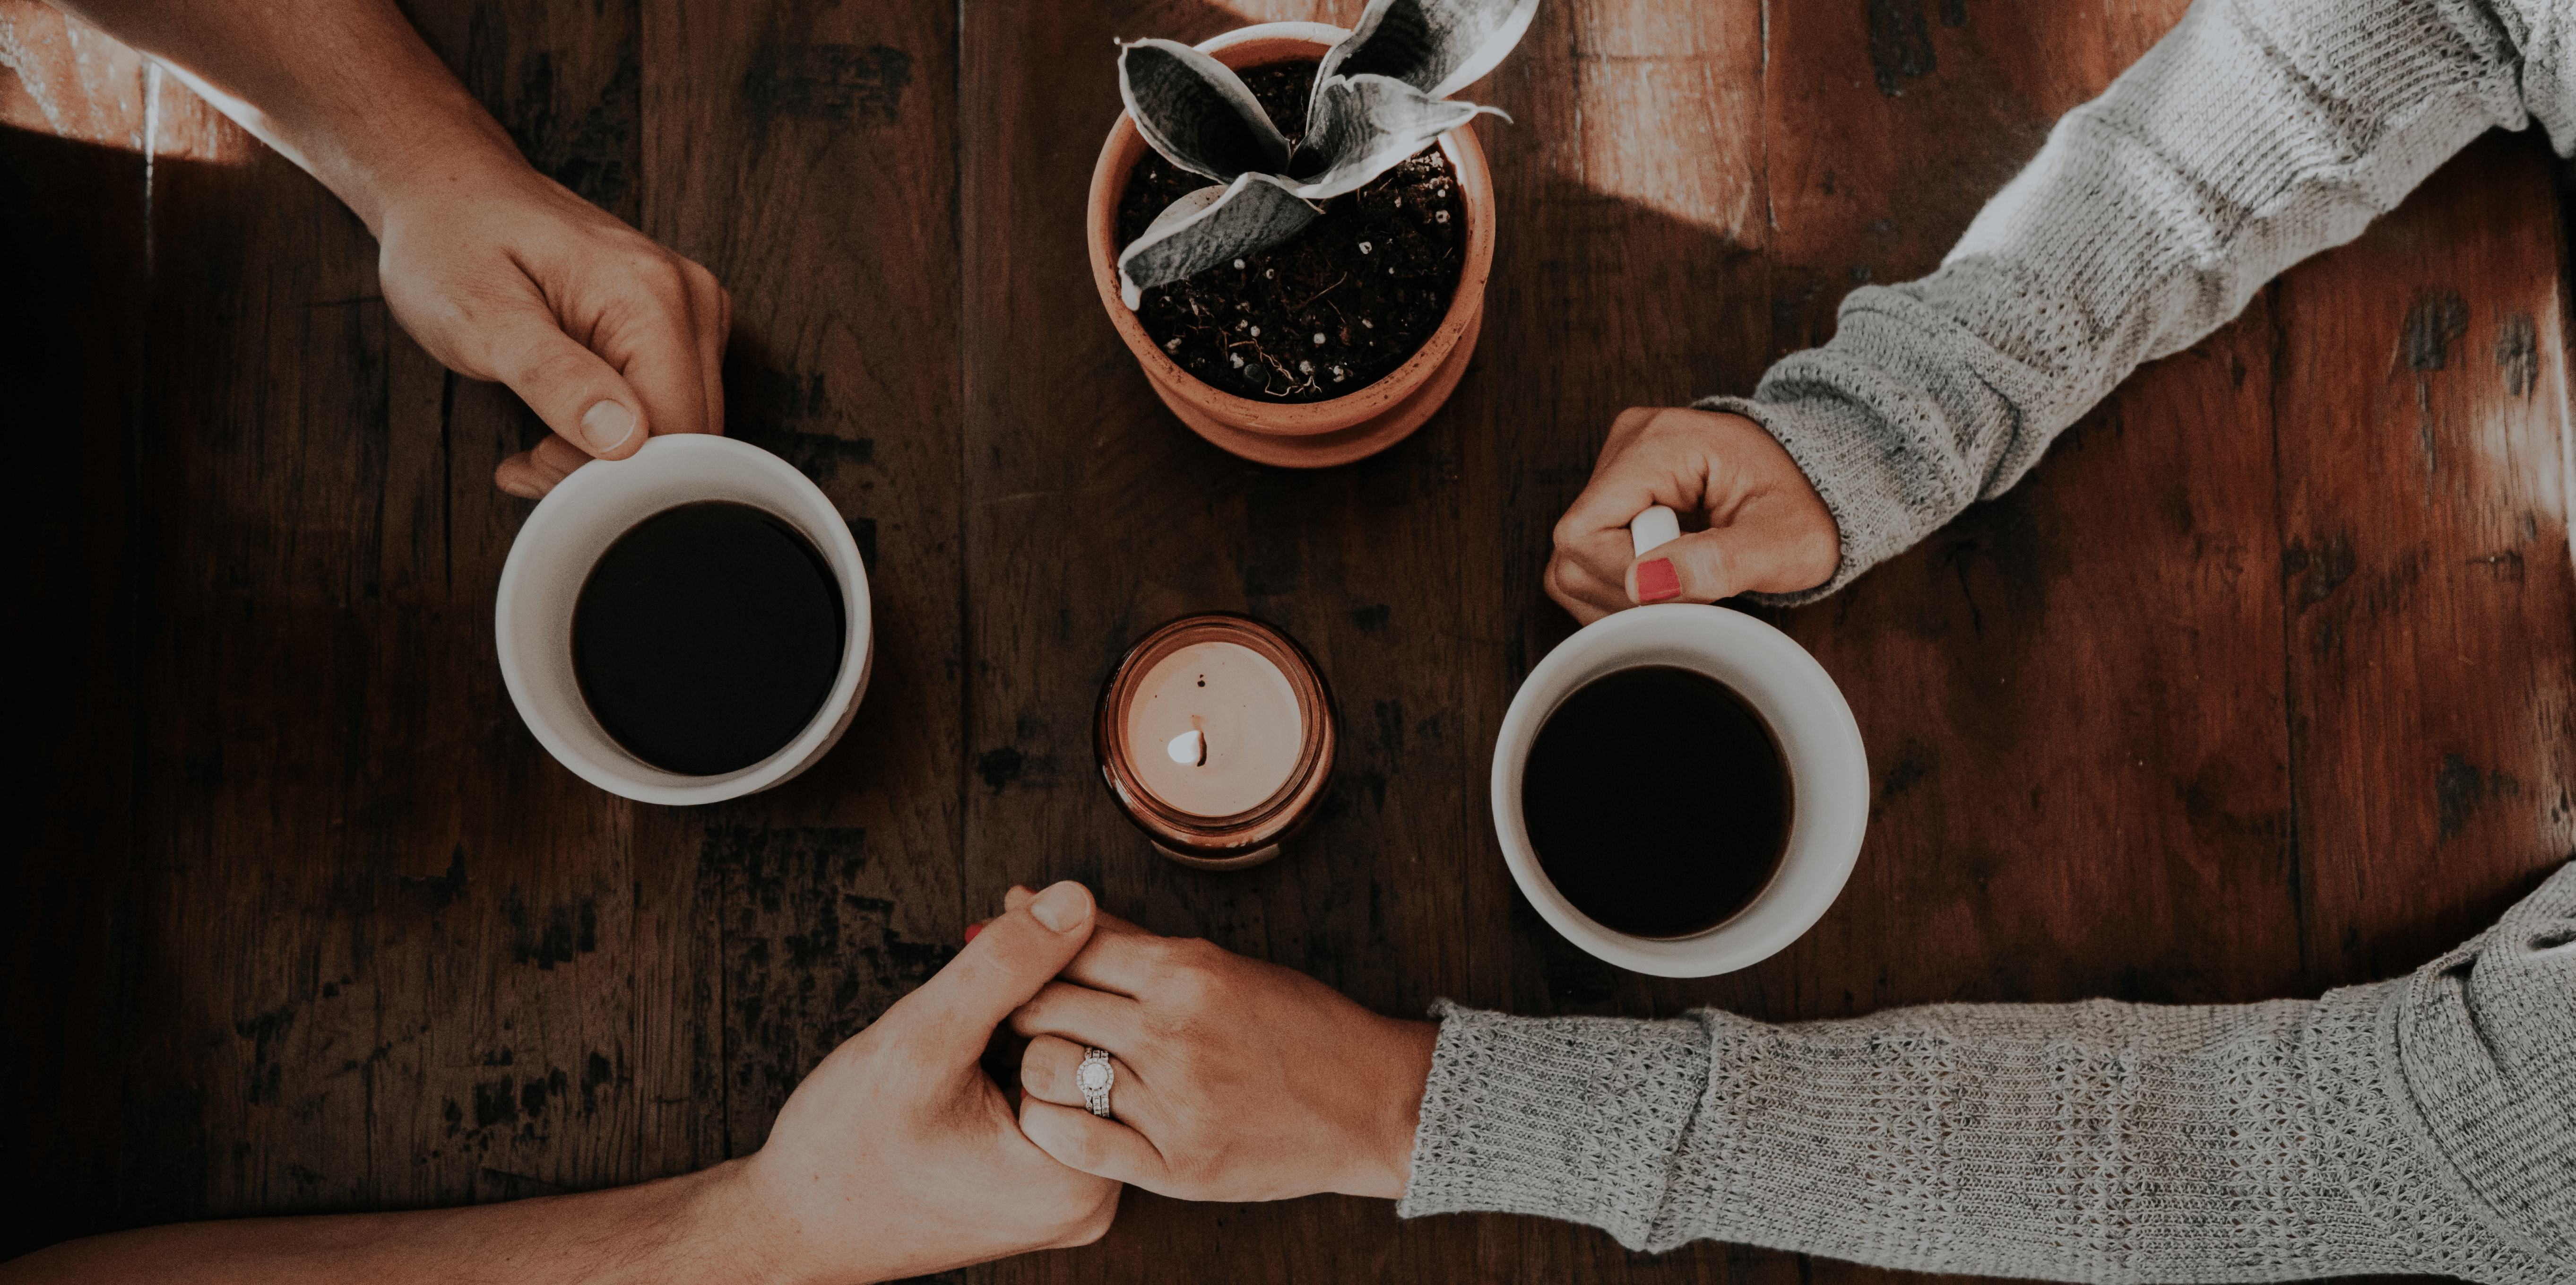 A married couple holding hands having a coffee.